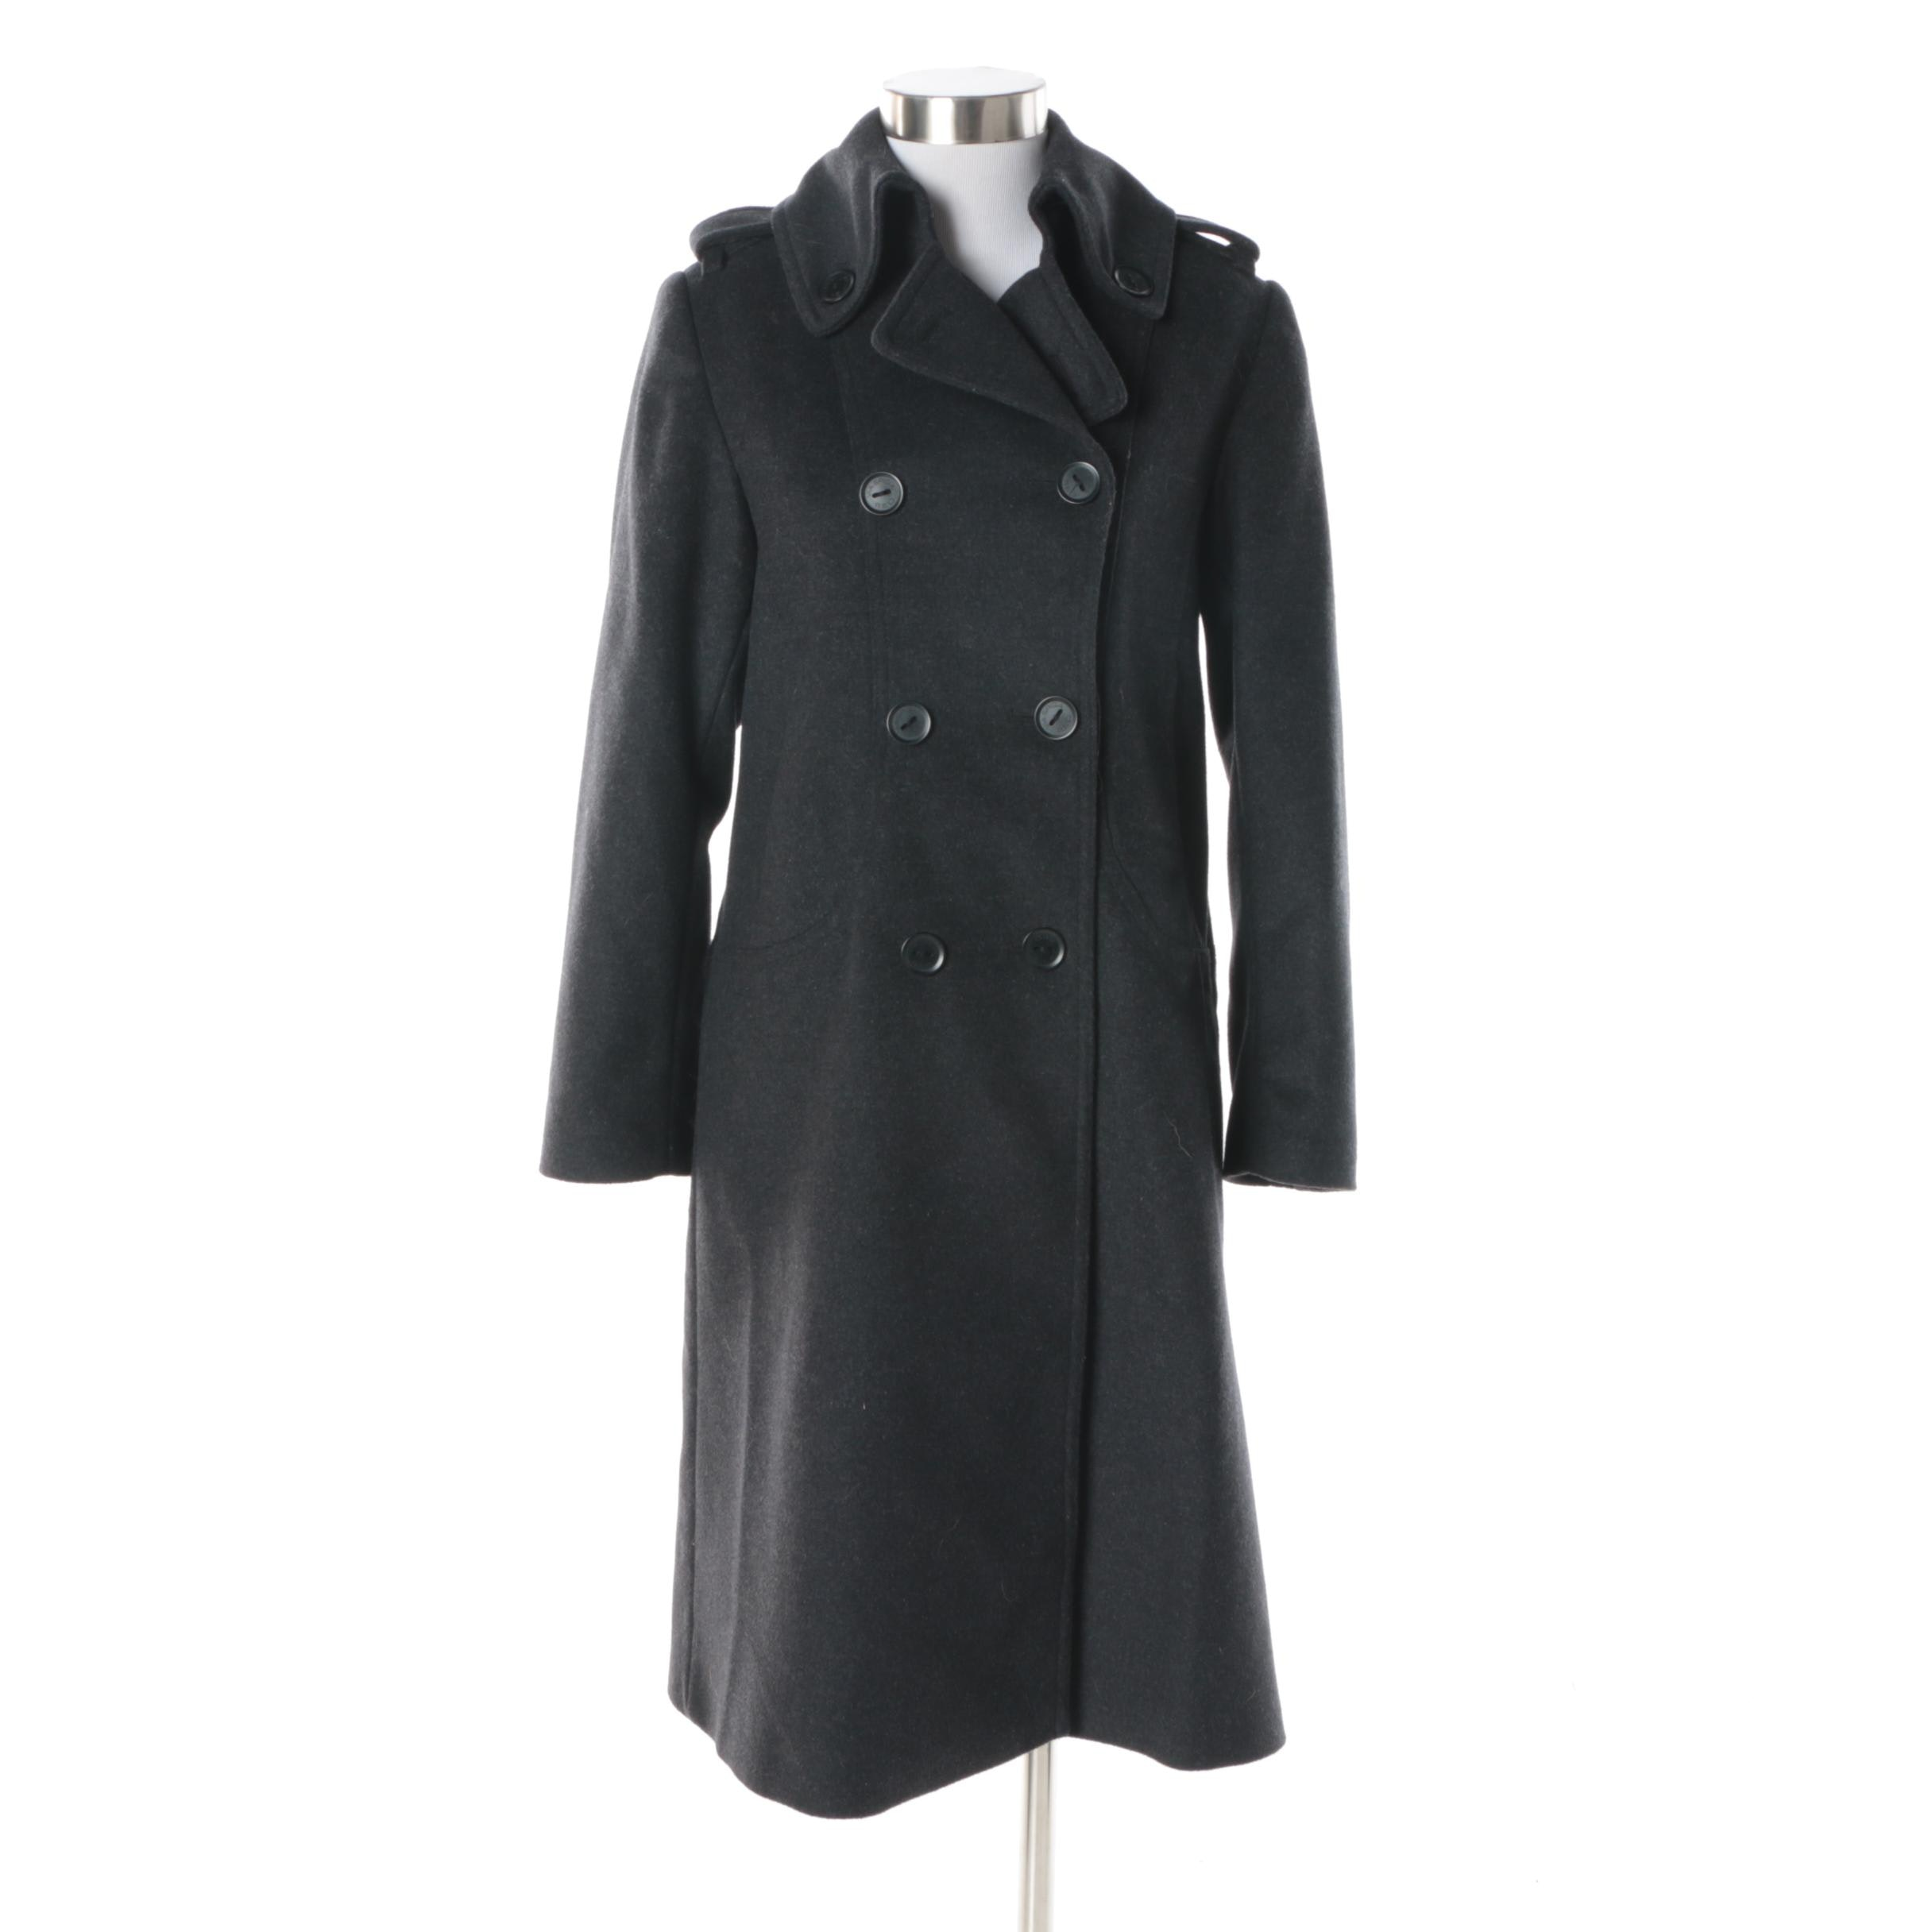 Via by Via Spiga Double-Breasted Charcoal Grey Wool and Cashmere Blend Coat